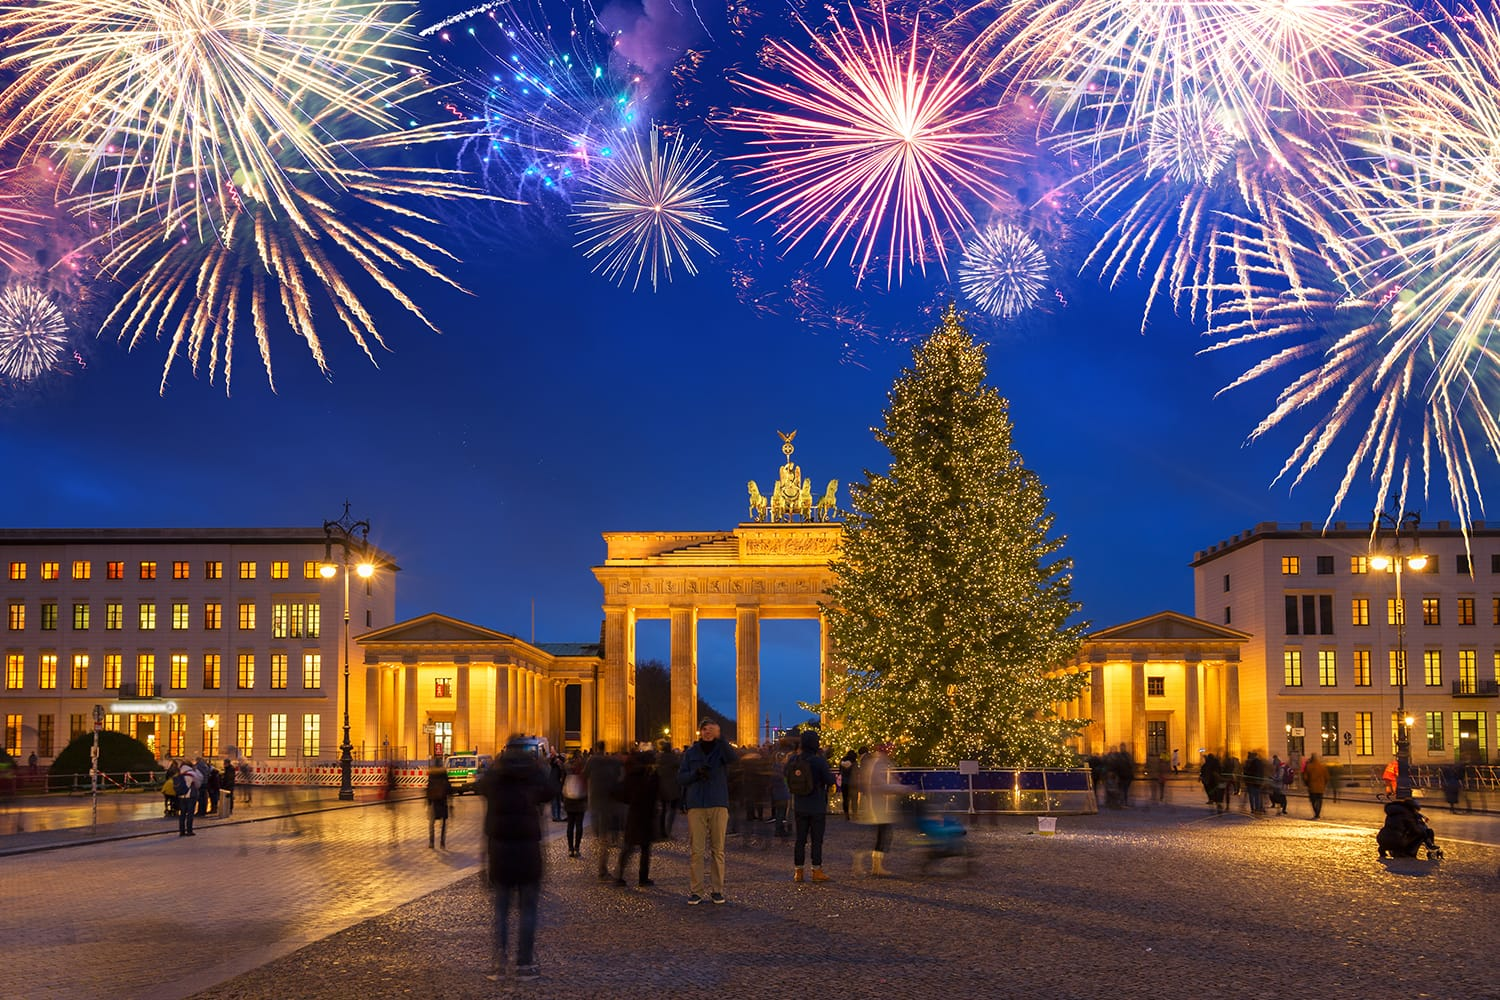 Brandenburg Gate with Christmas tree illuminated at night with fireworks, Berlin Germany